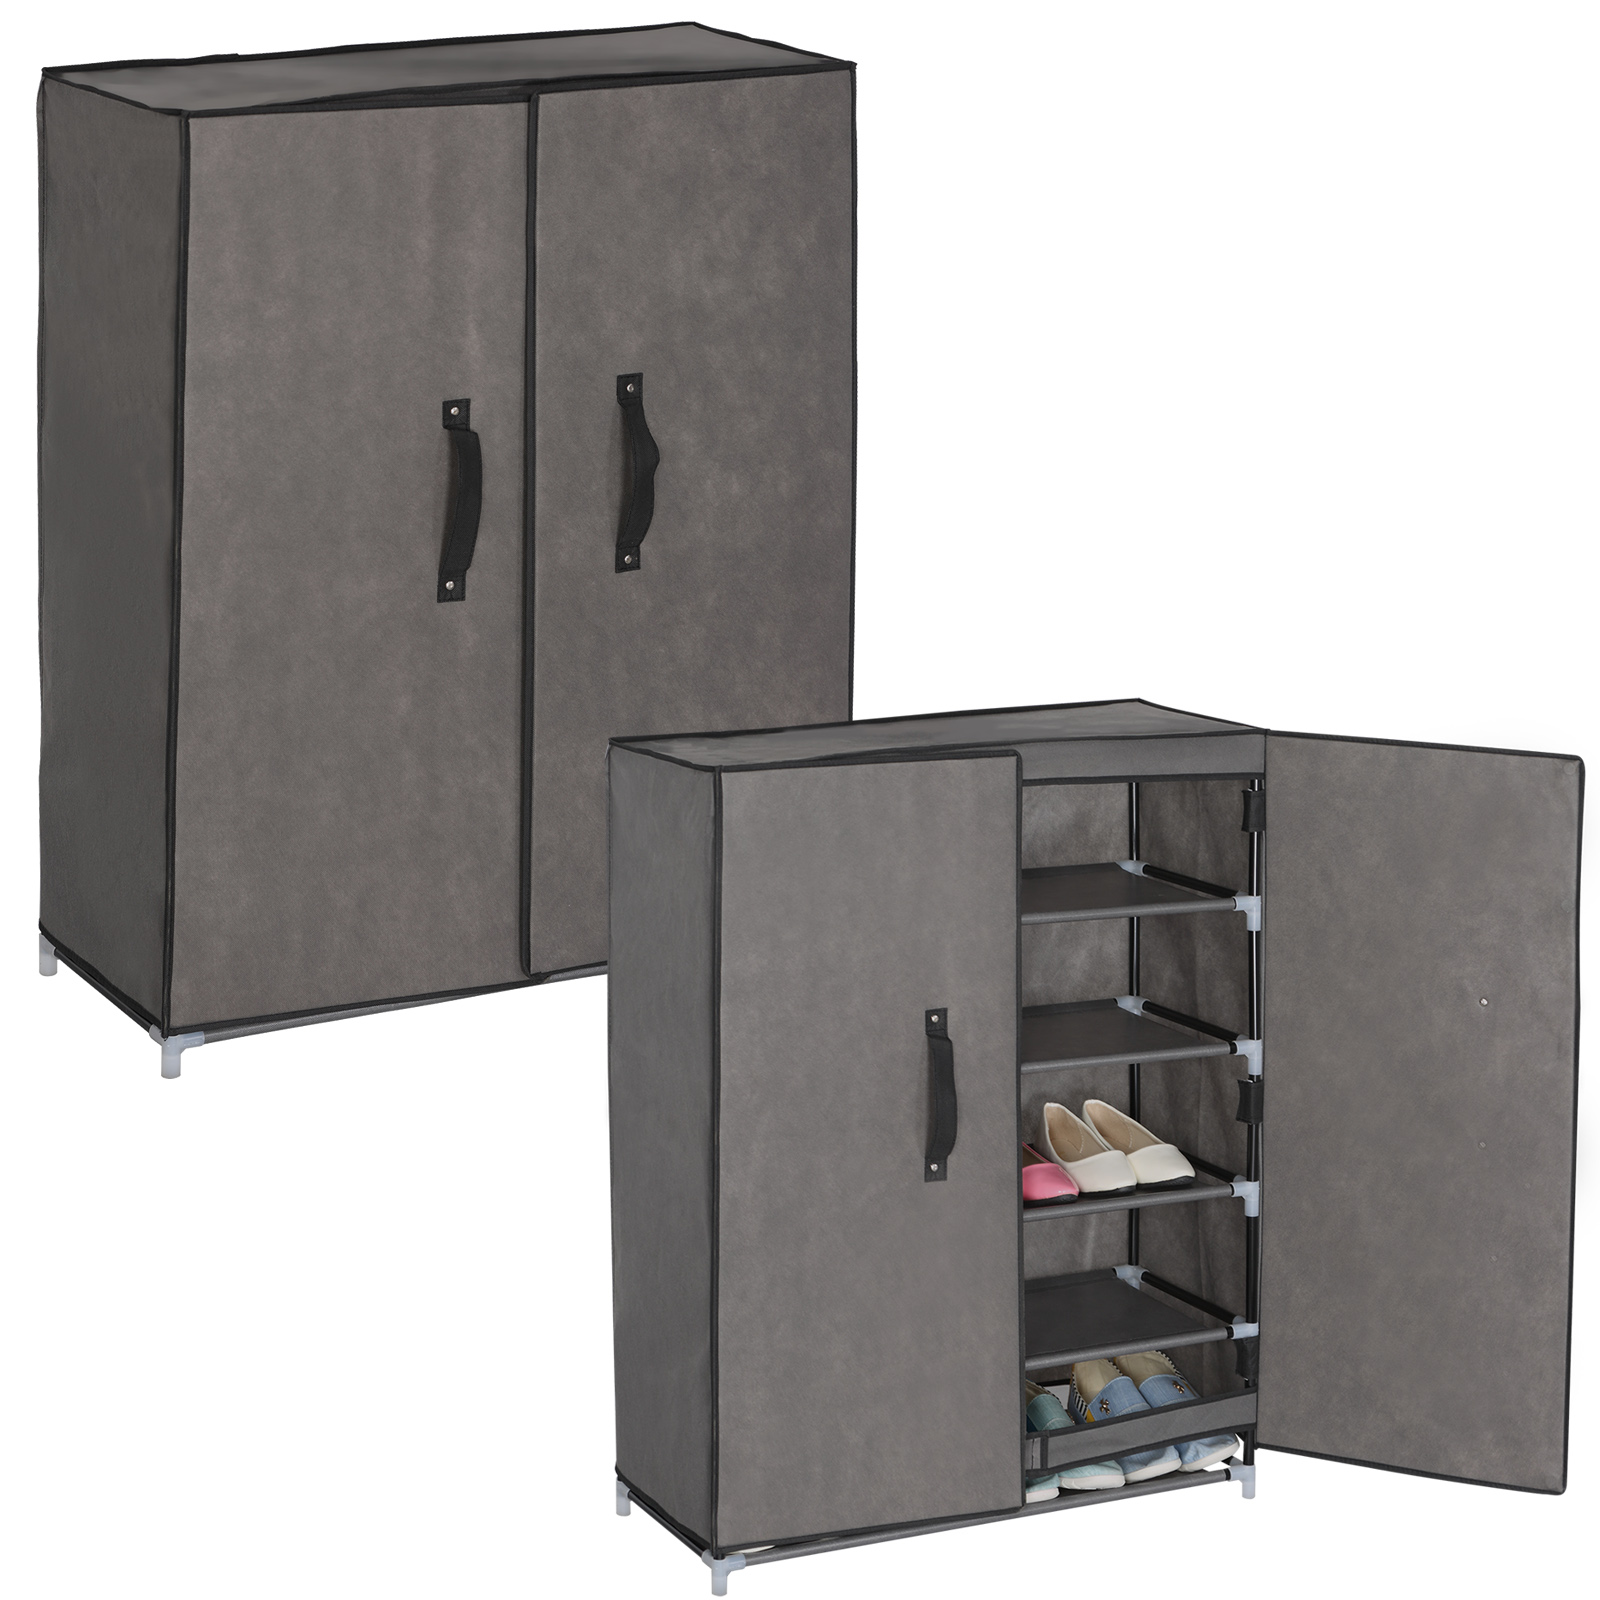 schuhschrank stoff textil mit fl gelt r faltschrank 5. Black Bedroom Furniture Sets. Home Design Ideas